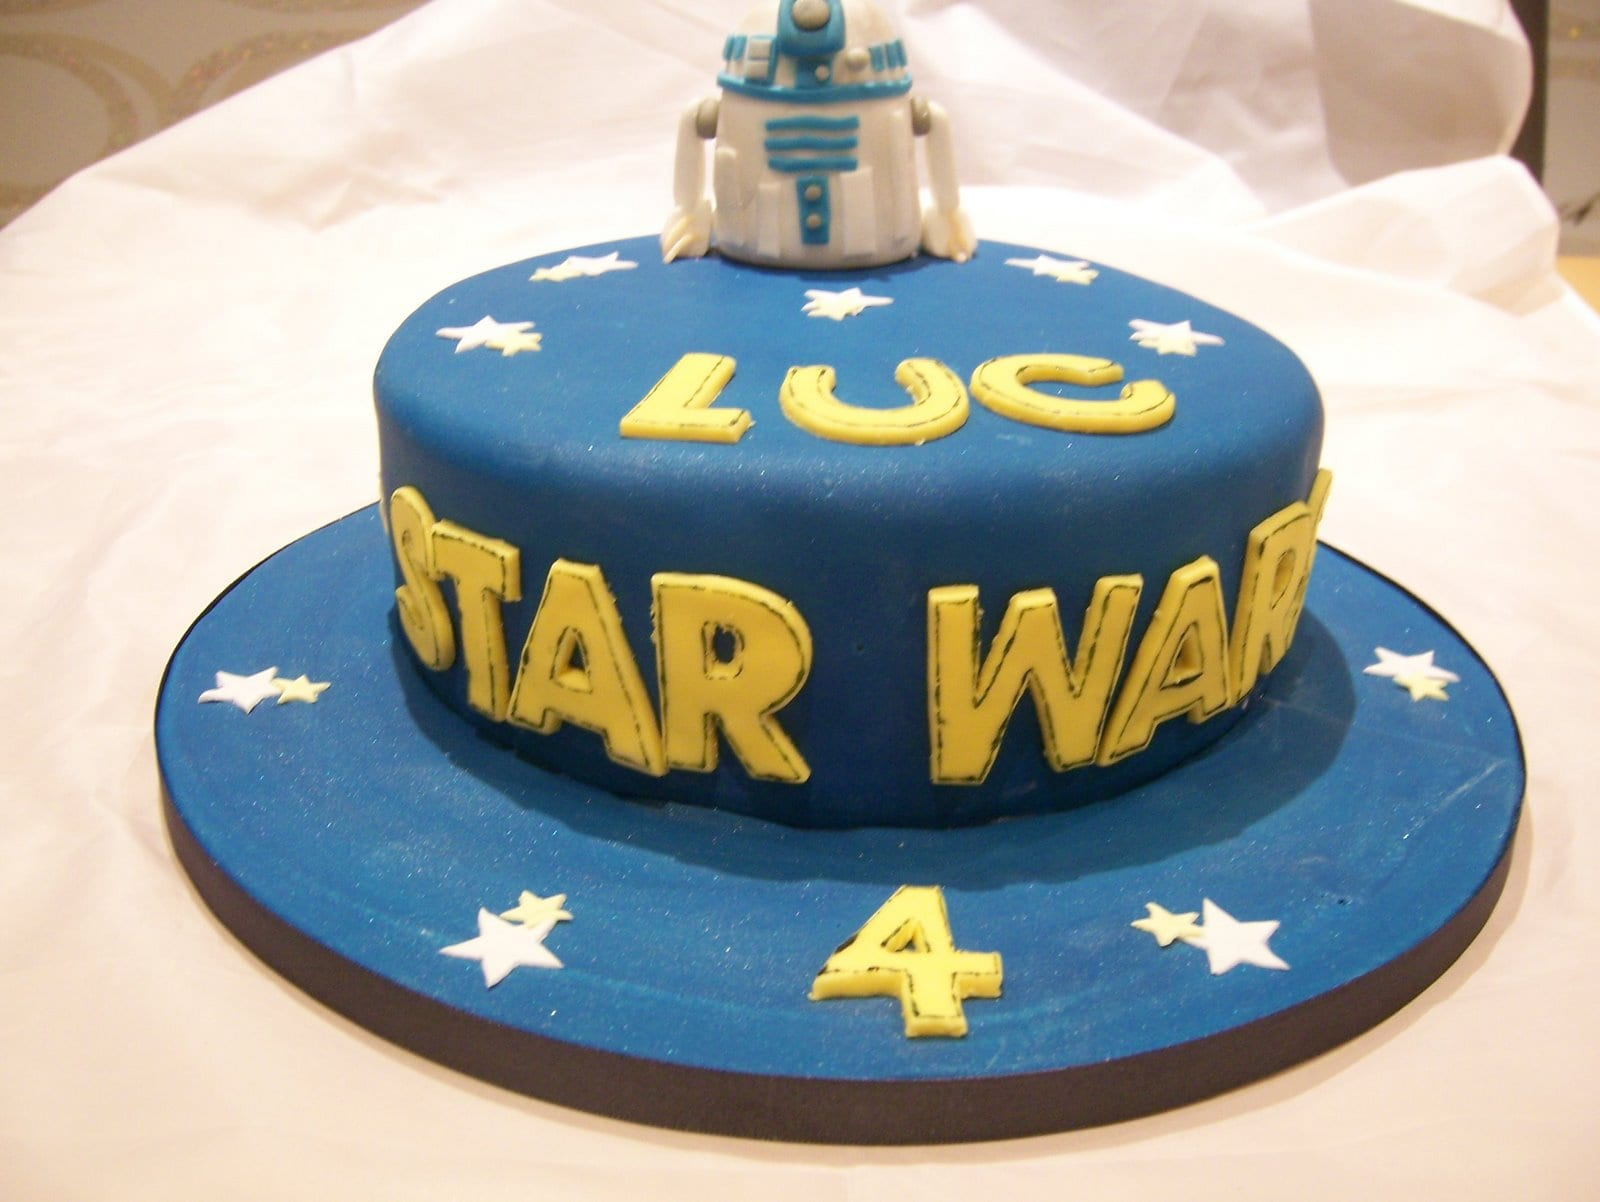 Wondrous Star Wars Cake Featuring R2D2 Casa Costello Personalised Birthday Cards Veneteletsinfo